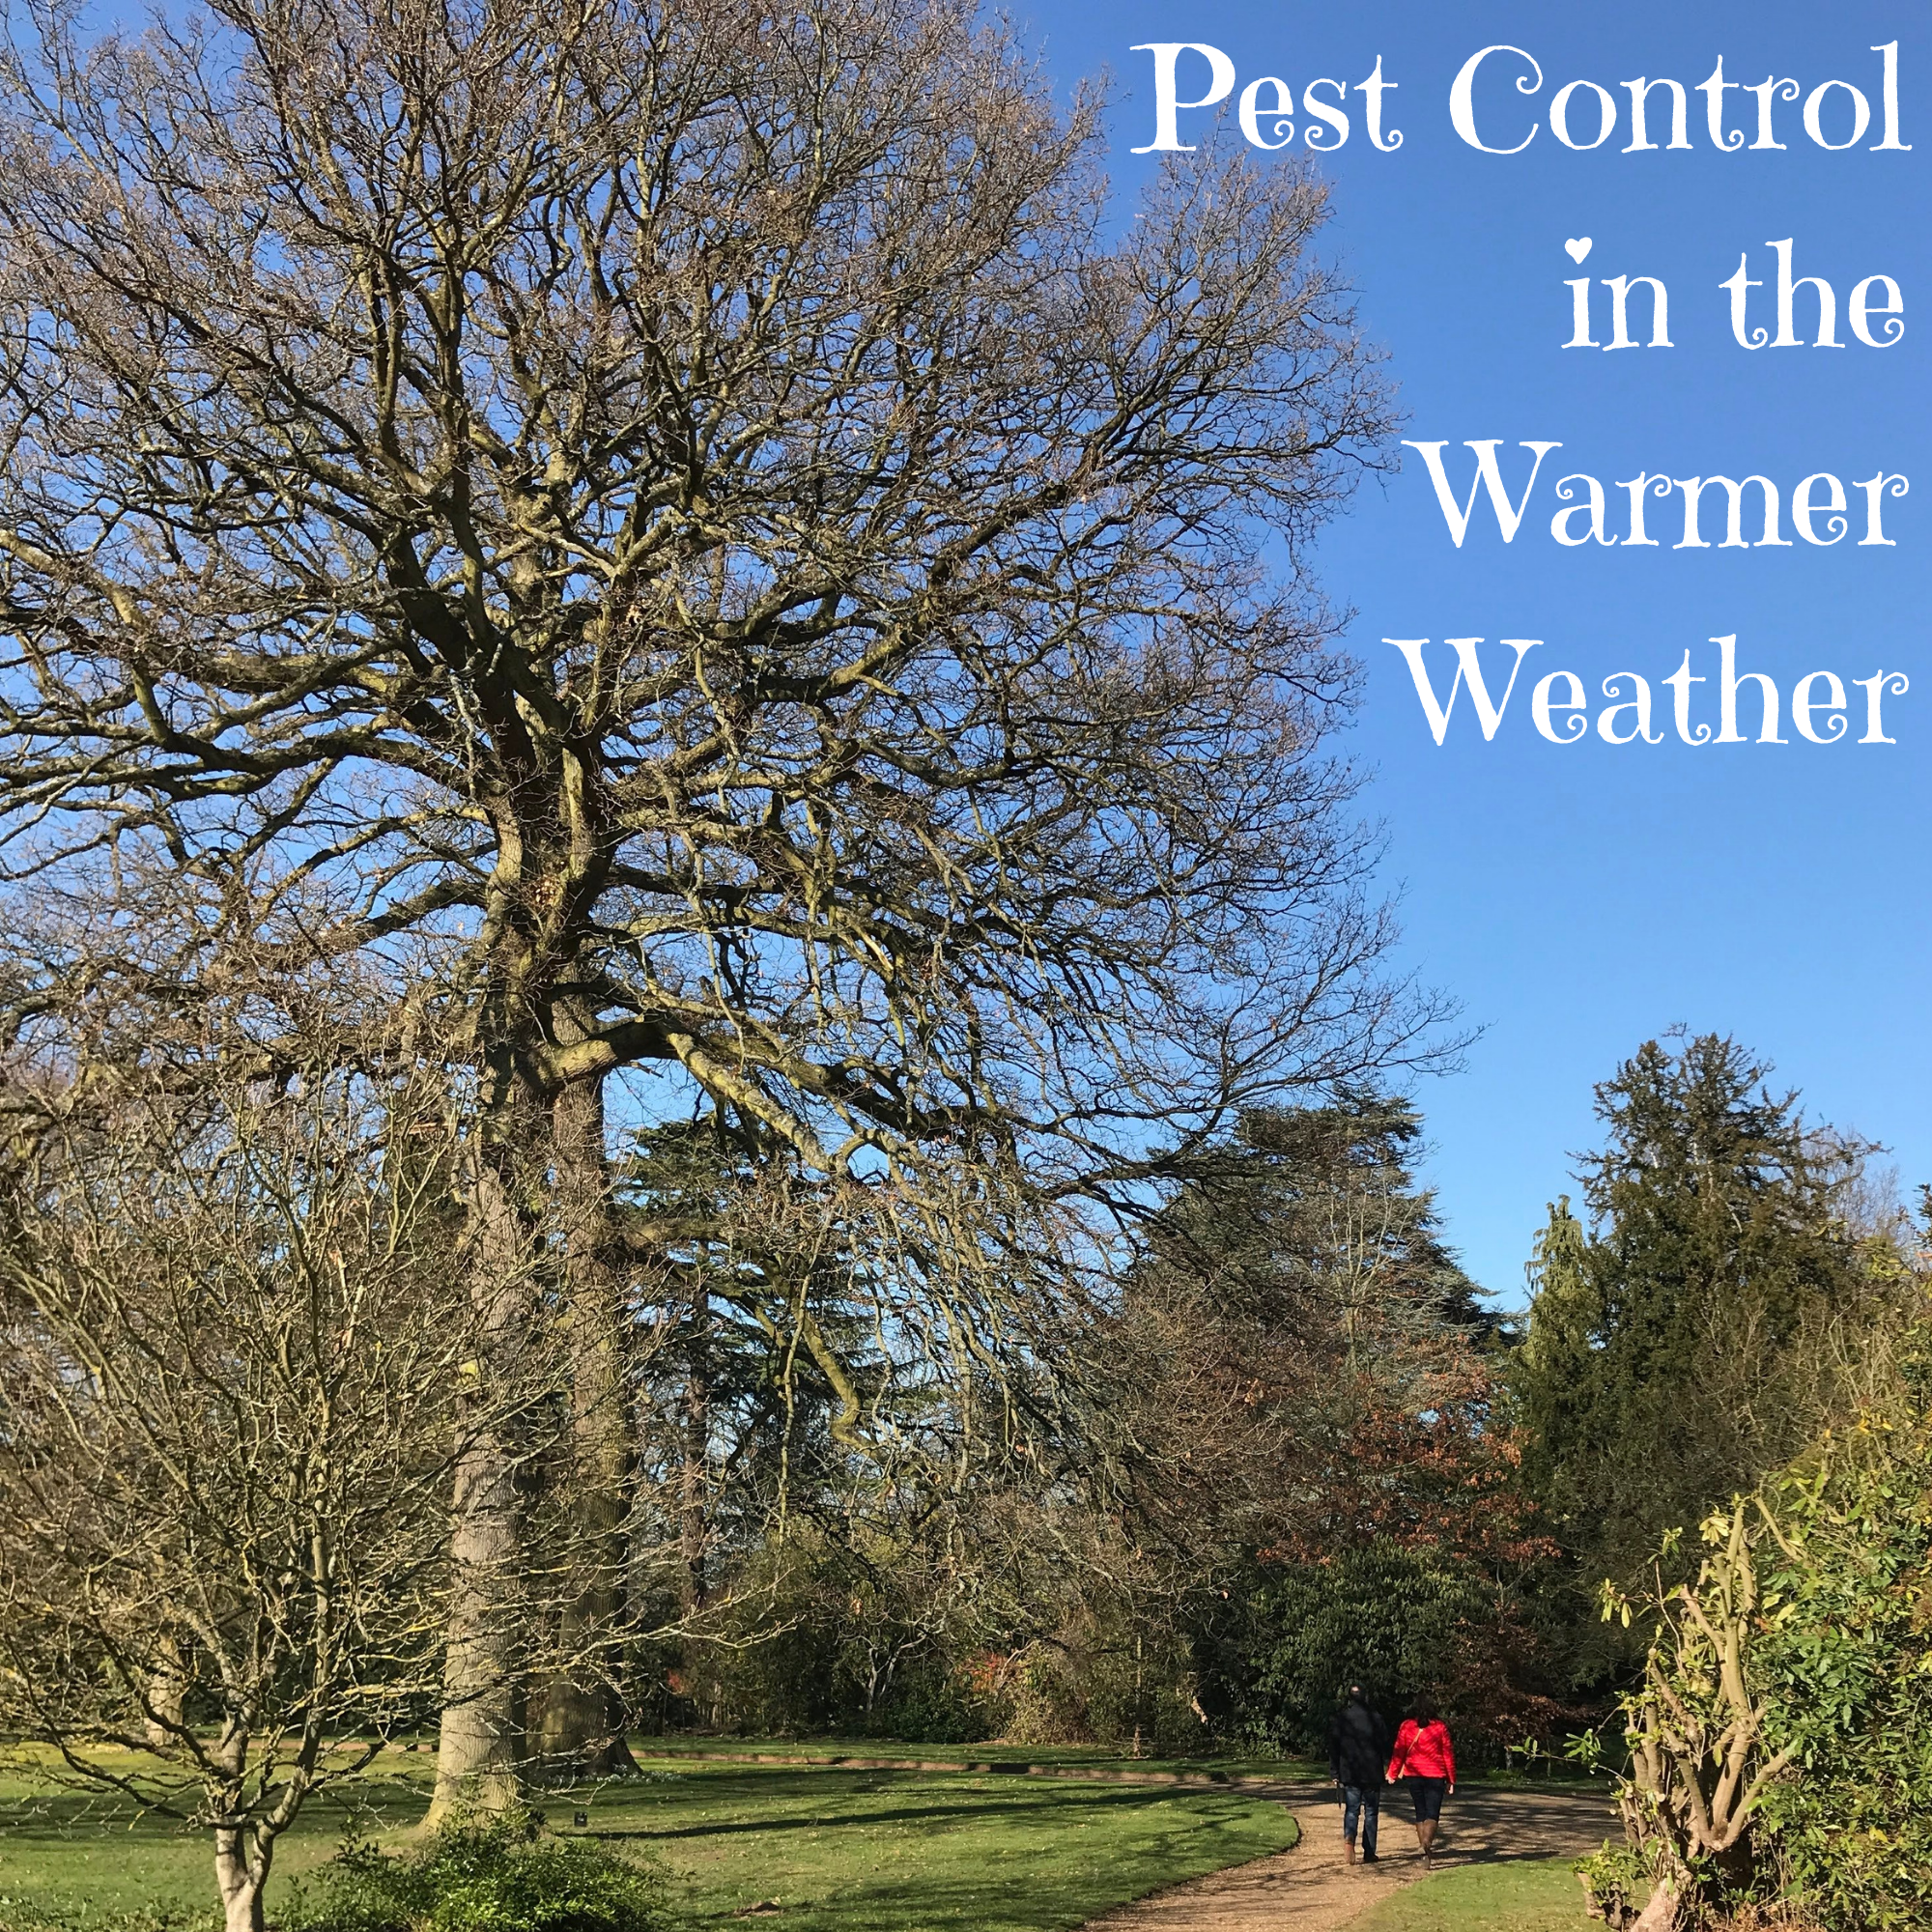 Pest Control in the Warmer Weather